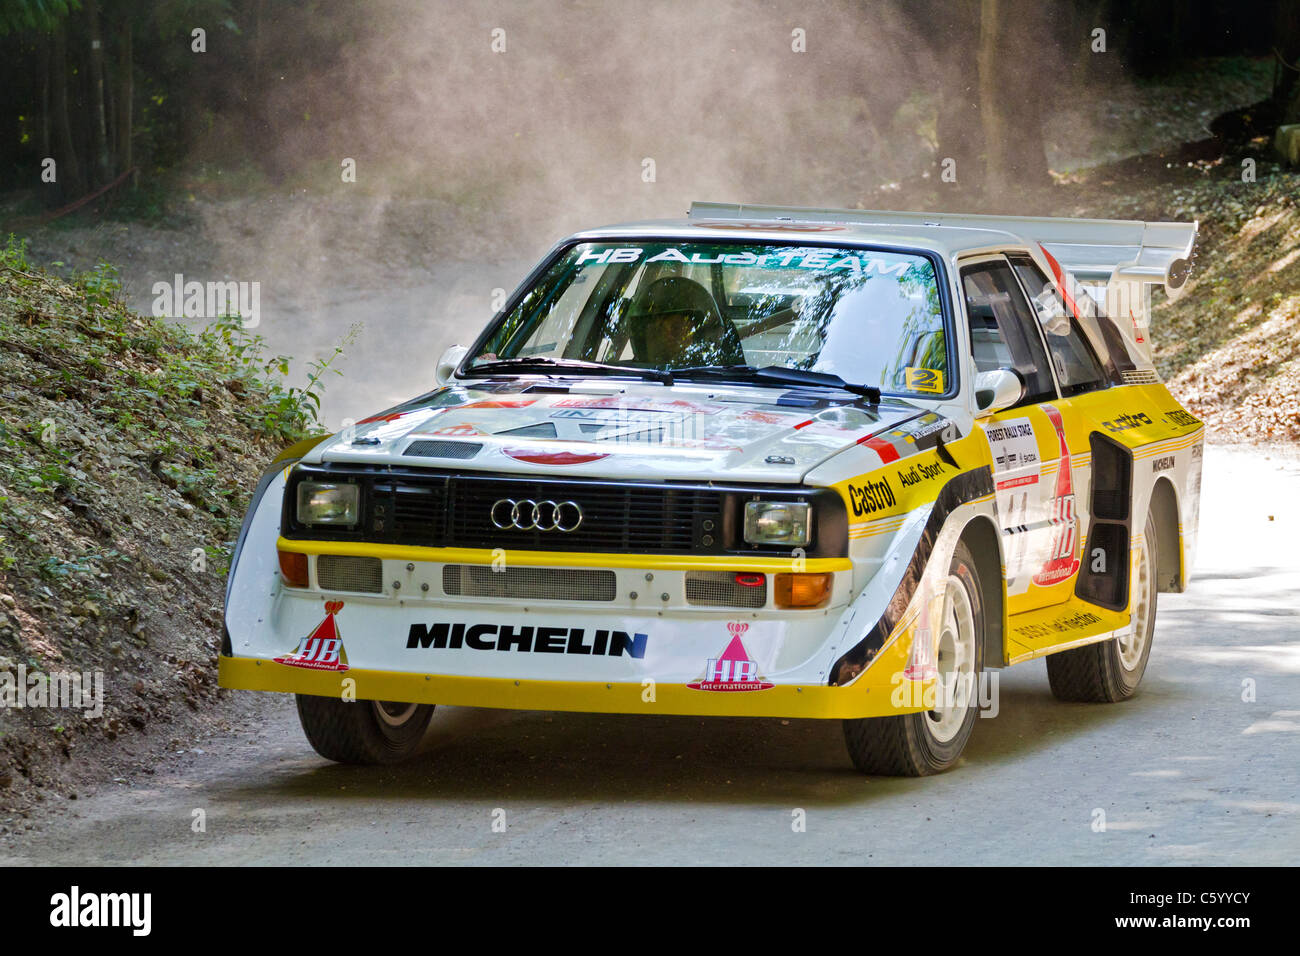 1985 audi sport quattro s1 e2 with driver gary midwinter at the 2011 stock photo 38108251 alamy. Black Bedroom Furniture Sets. Home Design Ideas